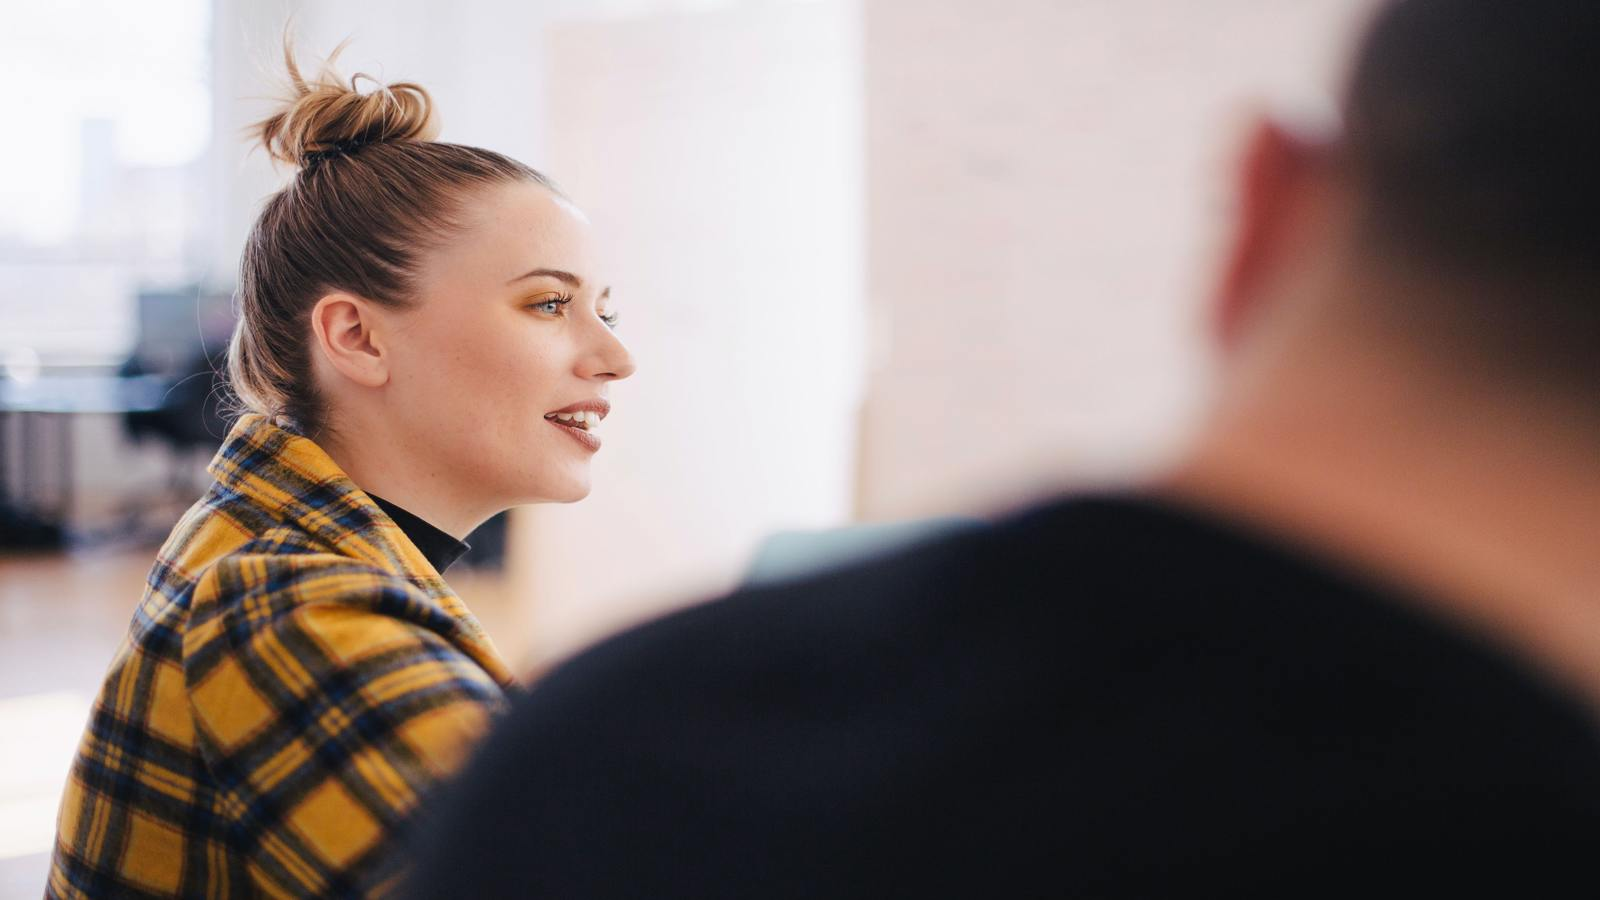 15 Witty Phrases You Can Use To Sound Smart In Conversations